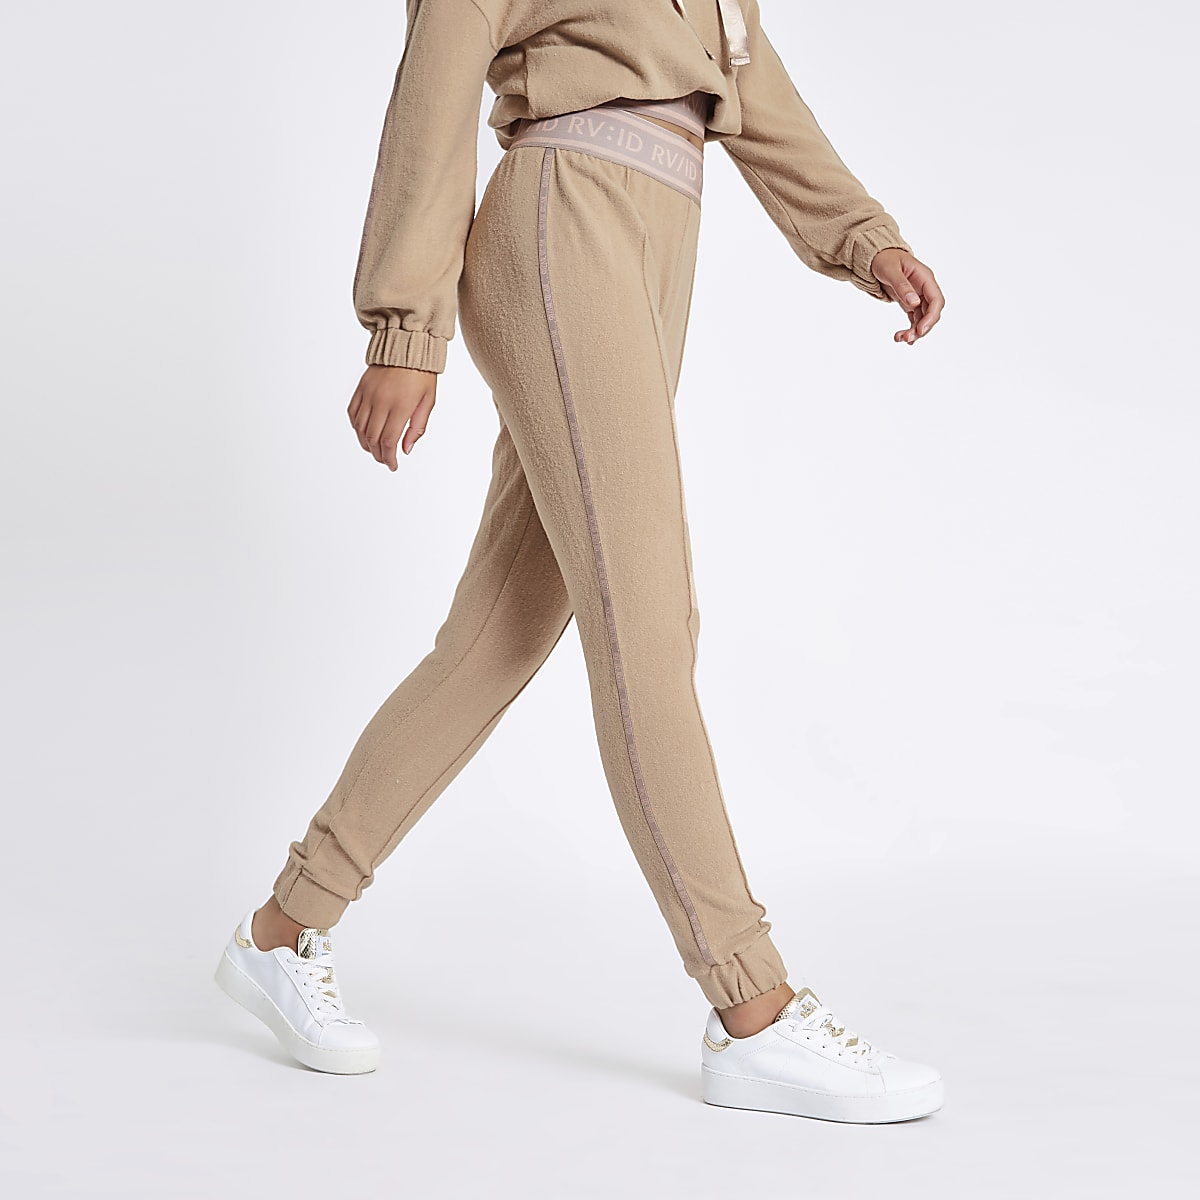 Beige RVID tape jogging bottoms